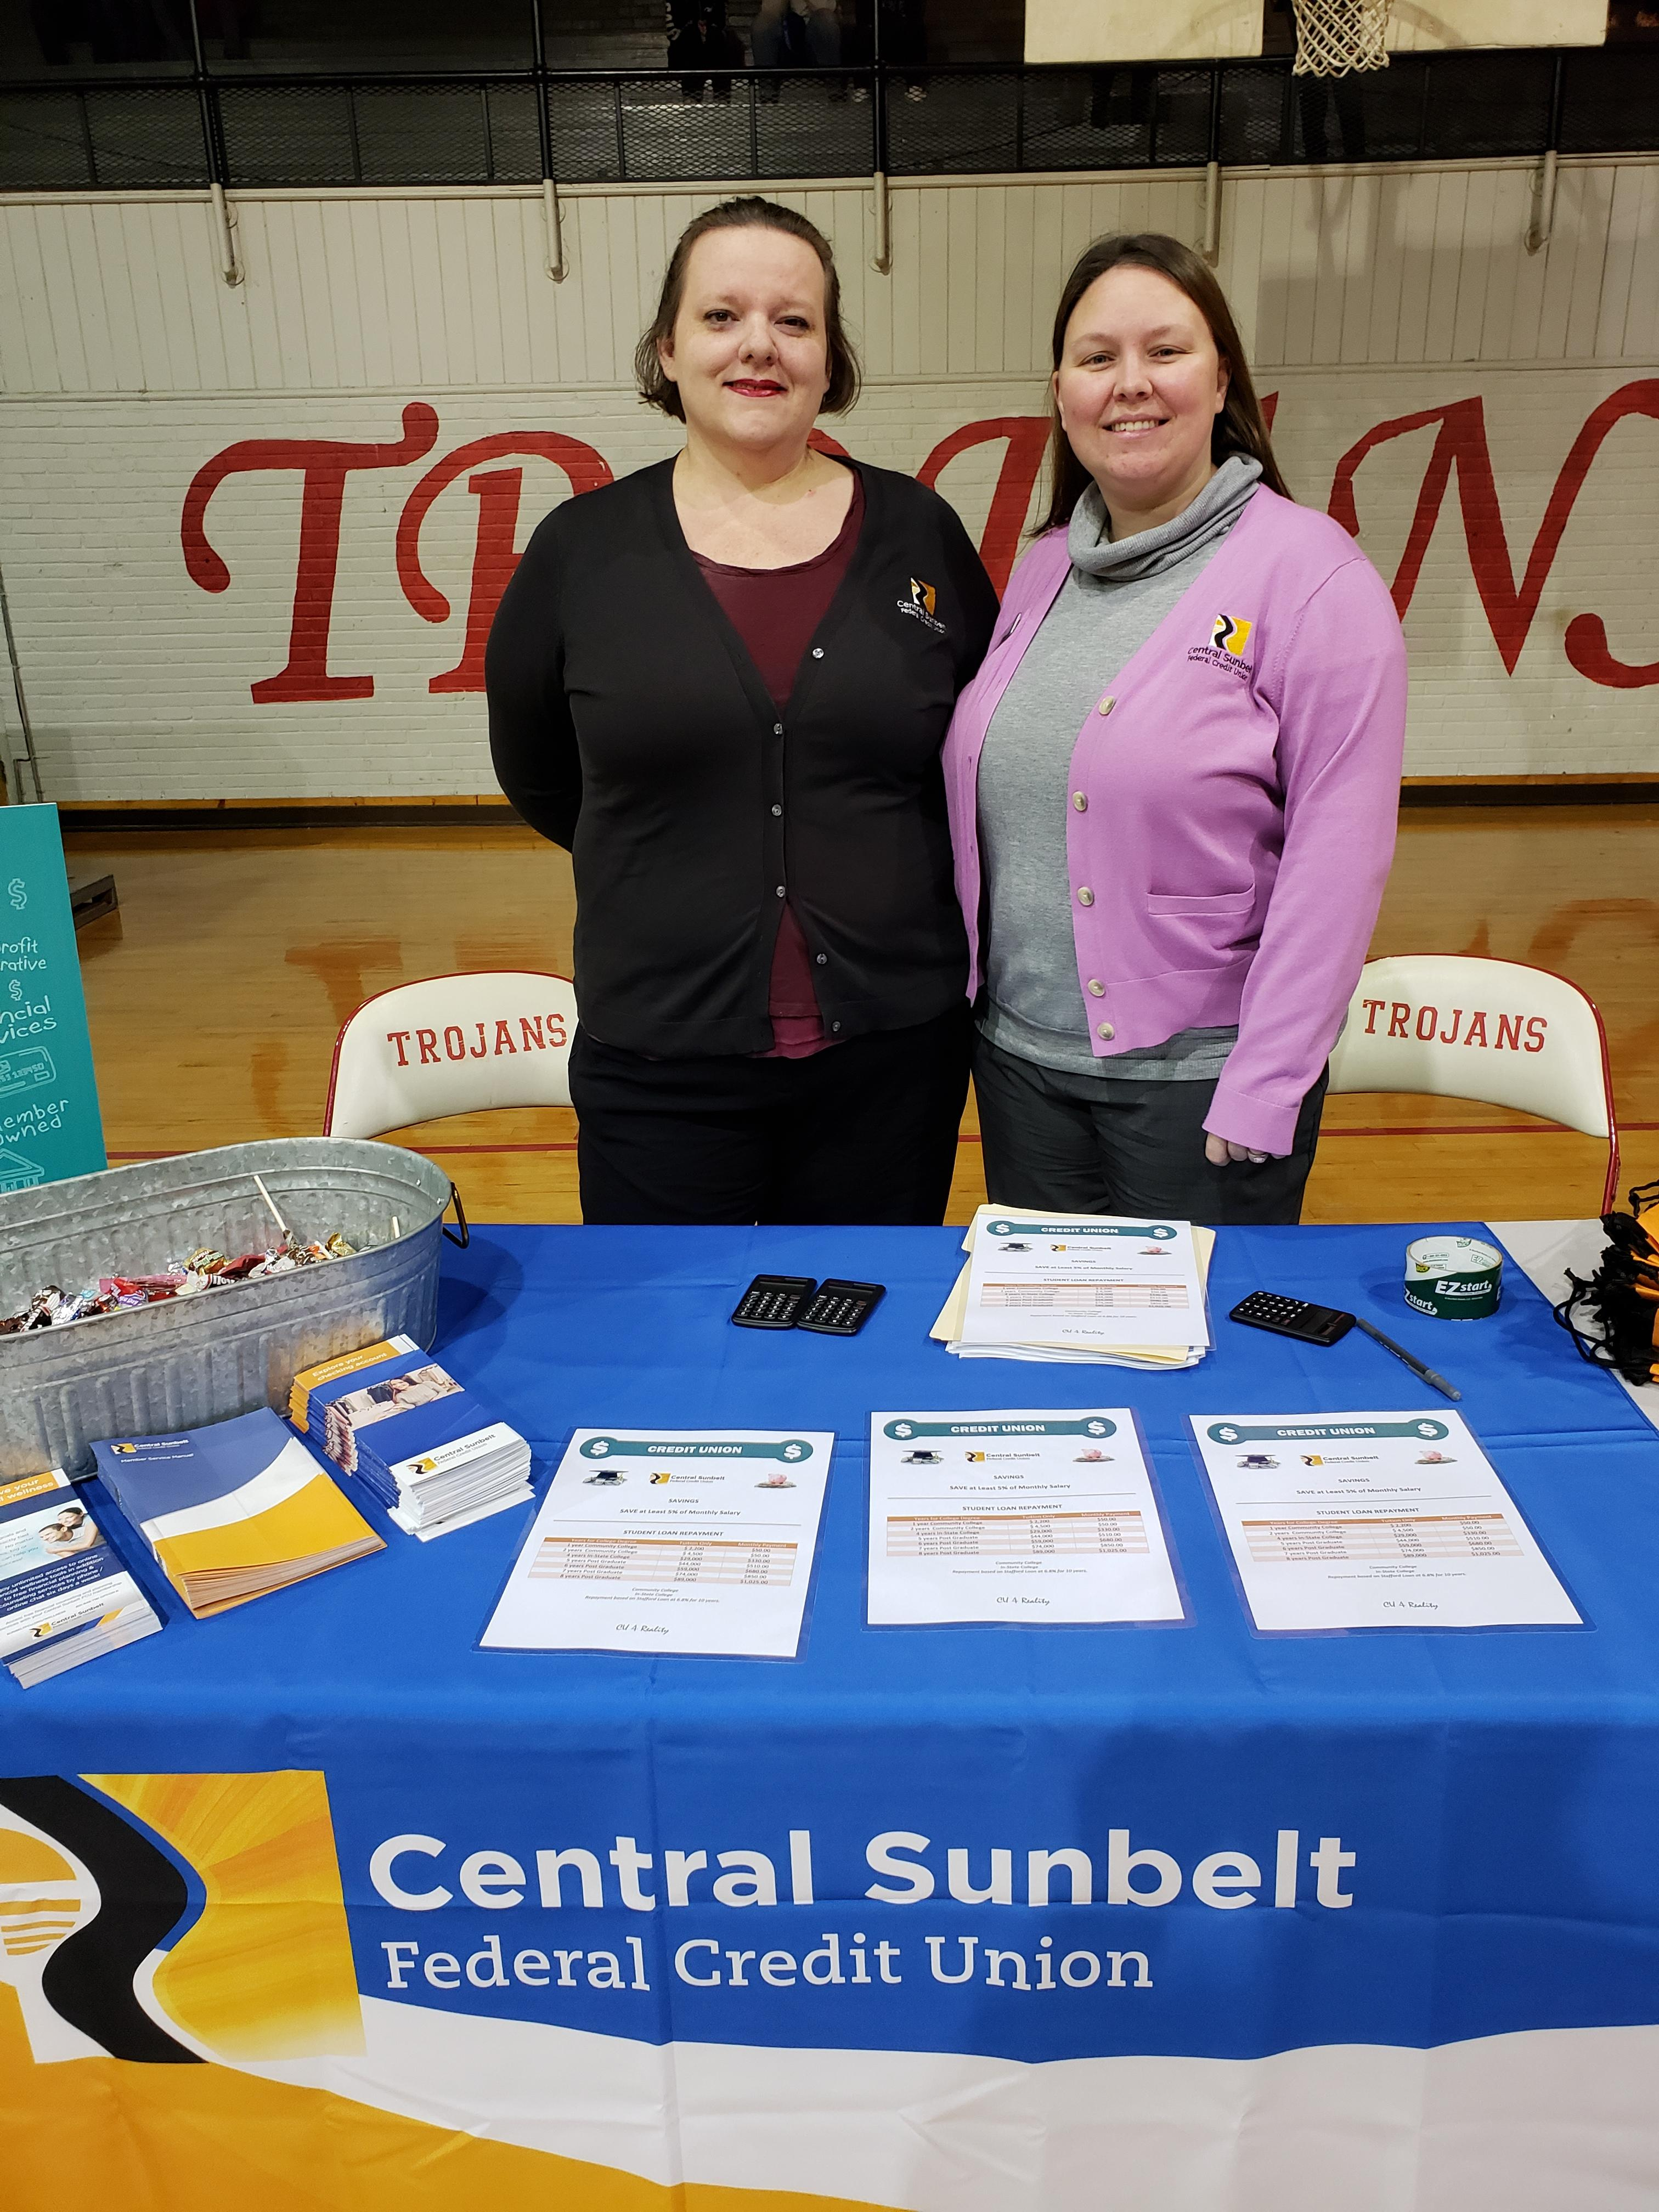 Central Sunbelt at the Reality Fair, Magee High School in Simpson County Mississippi